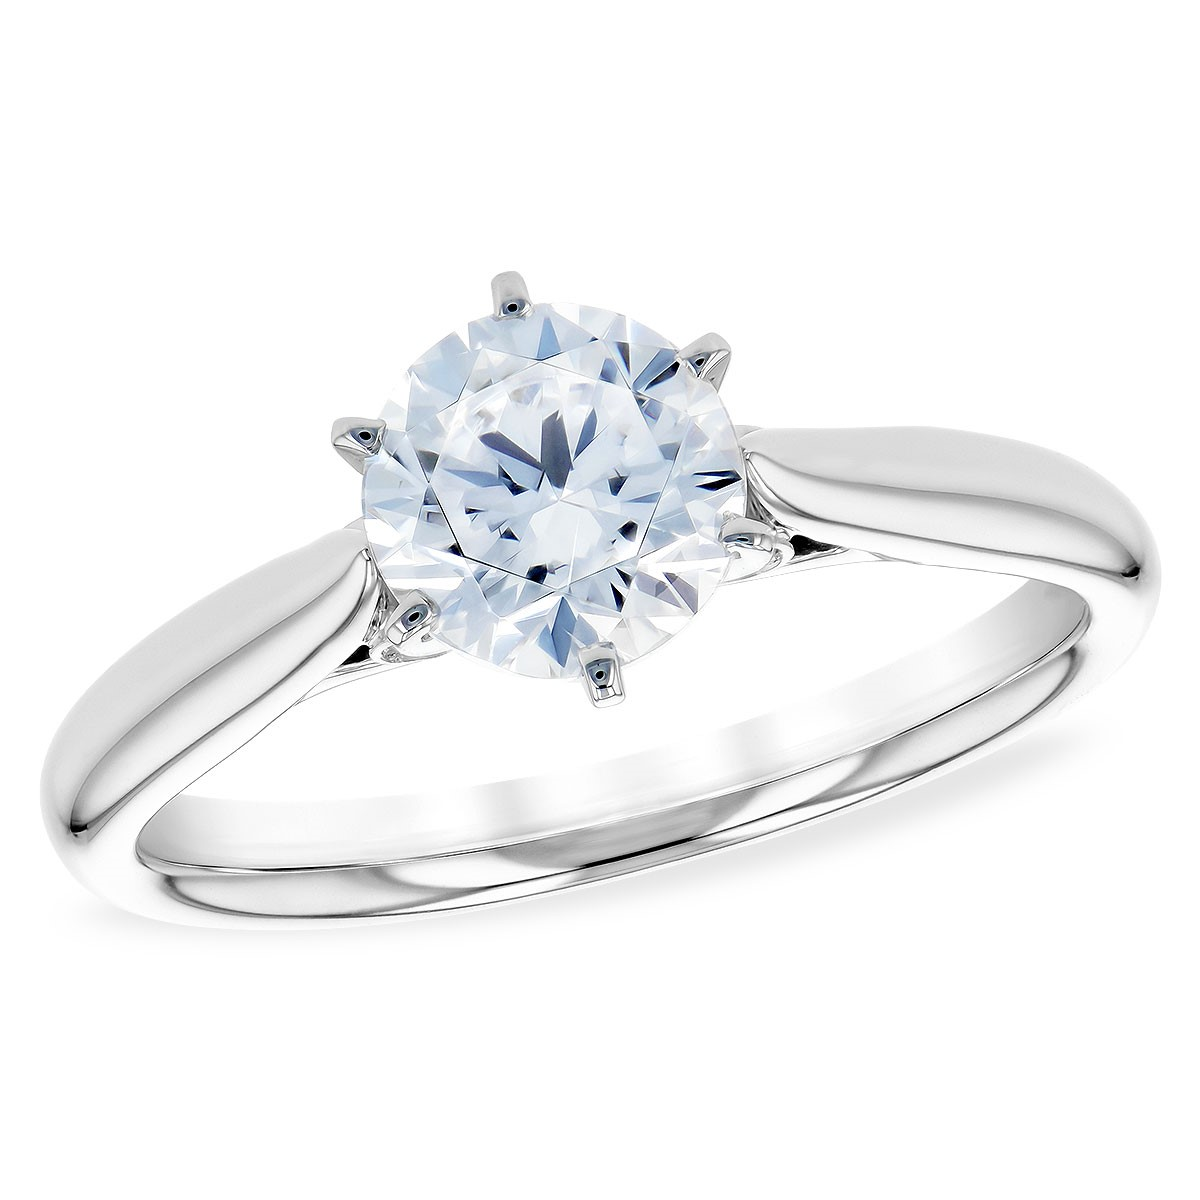 Classic, Elegant Engagement Ring by Allison Kaufman